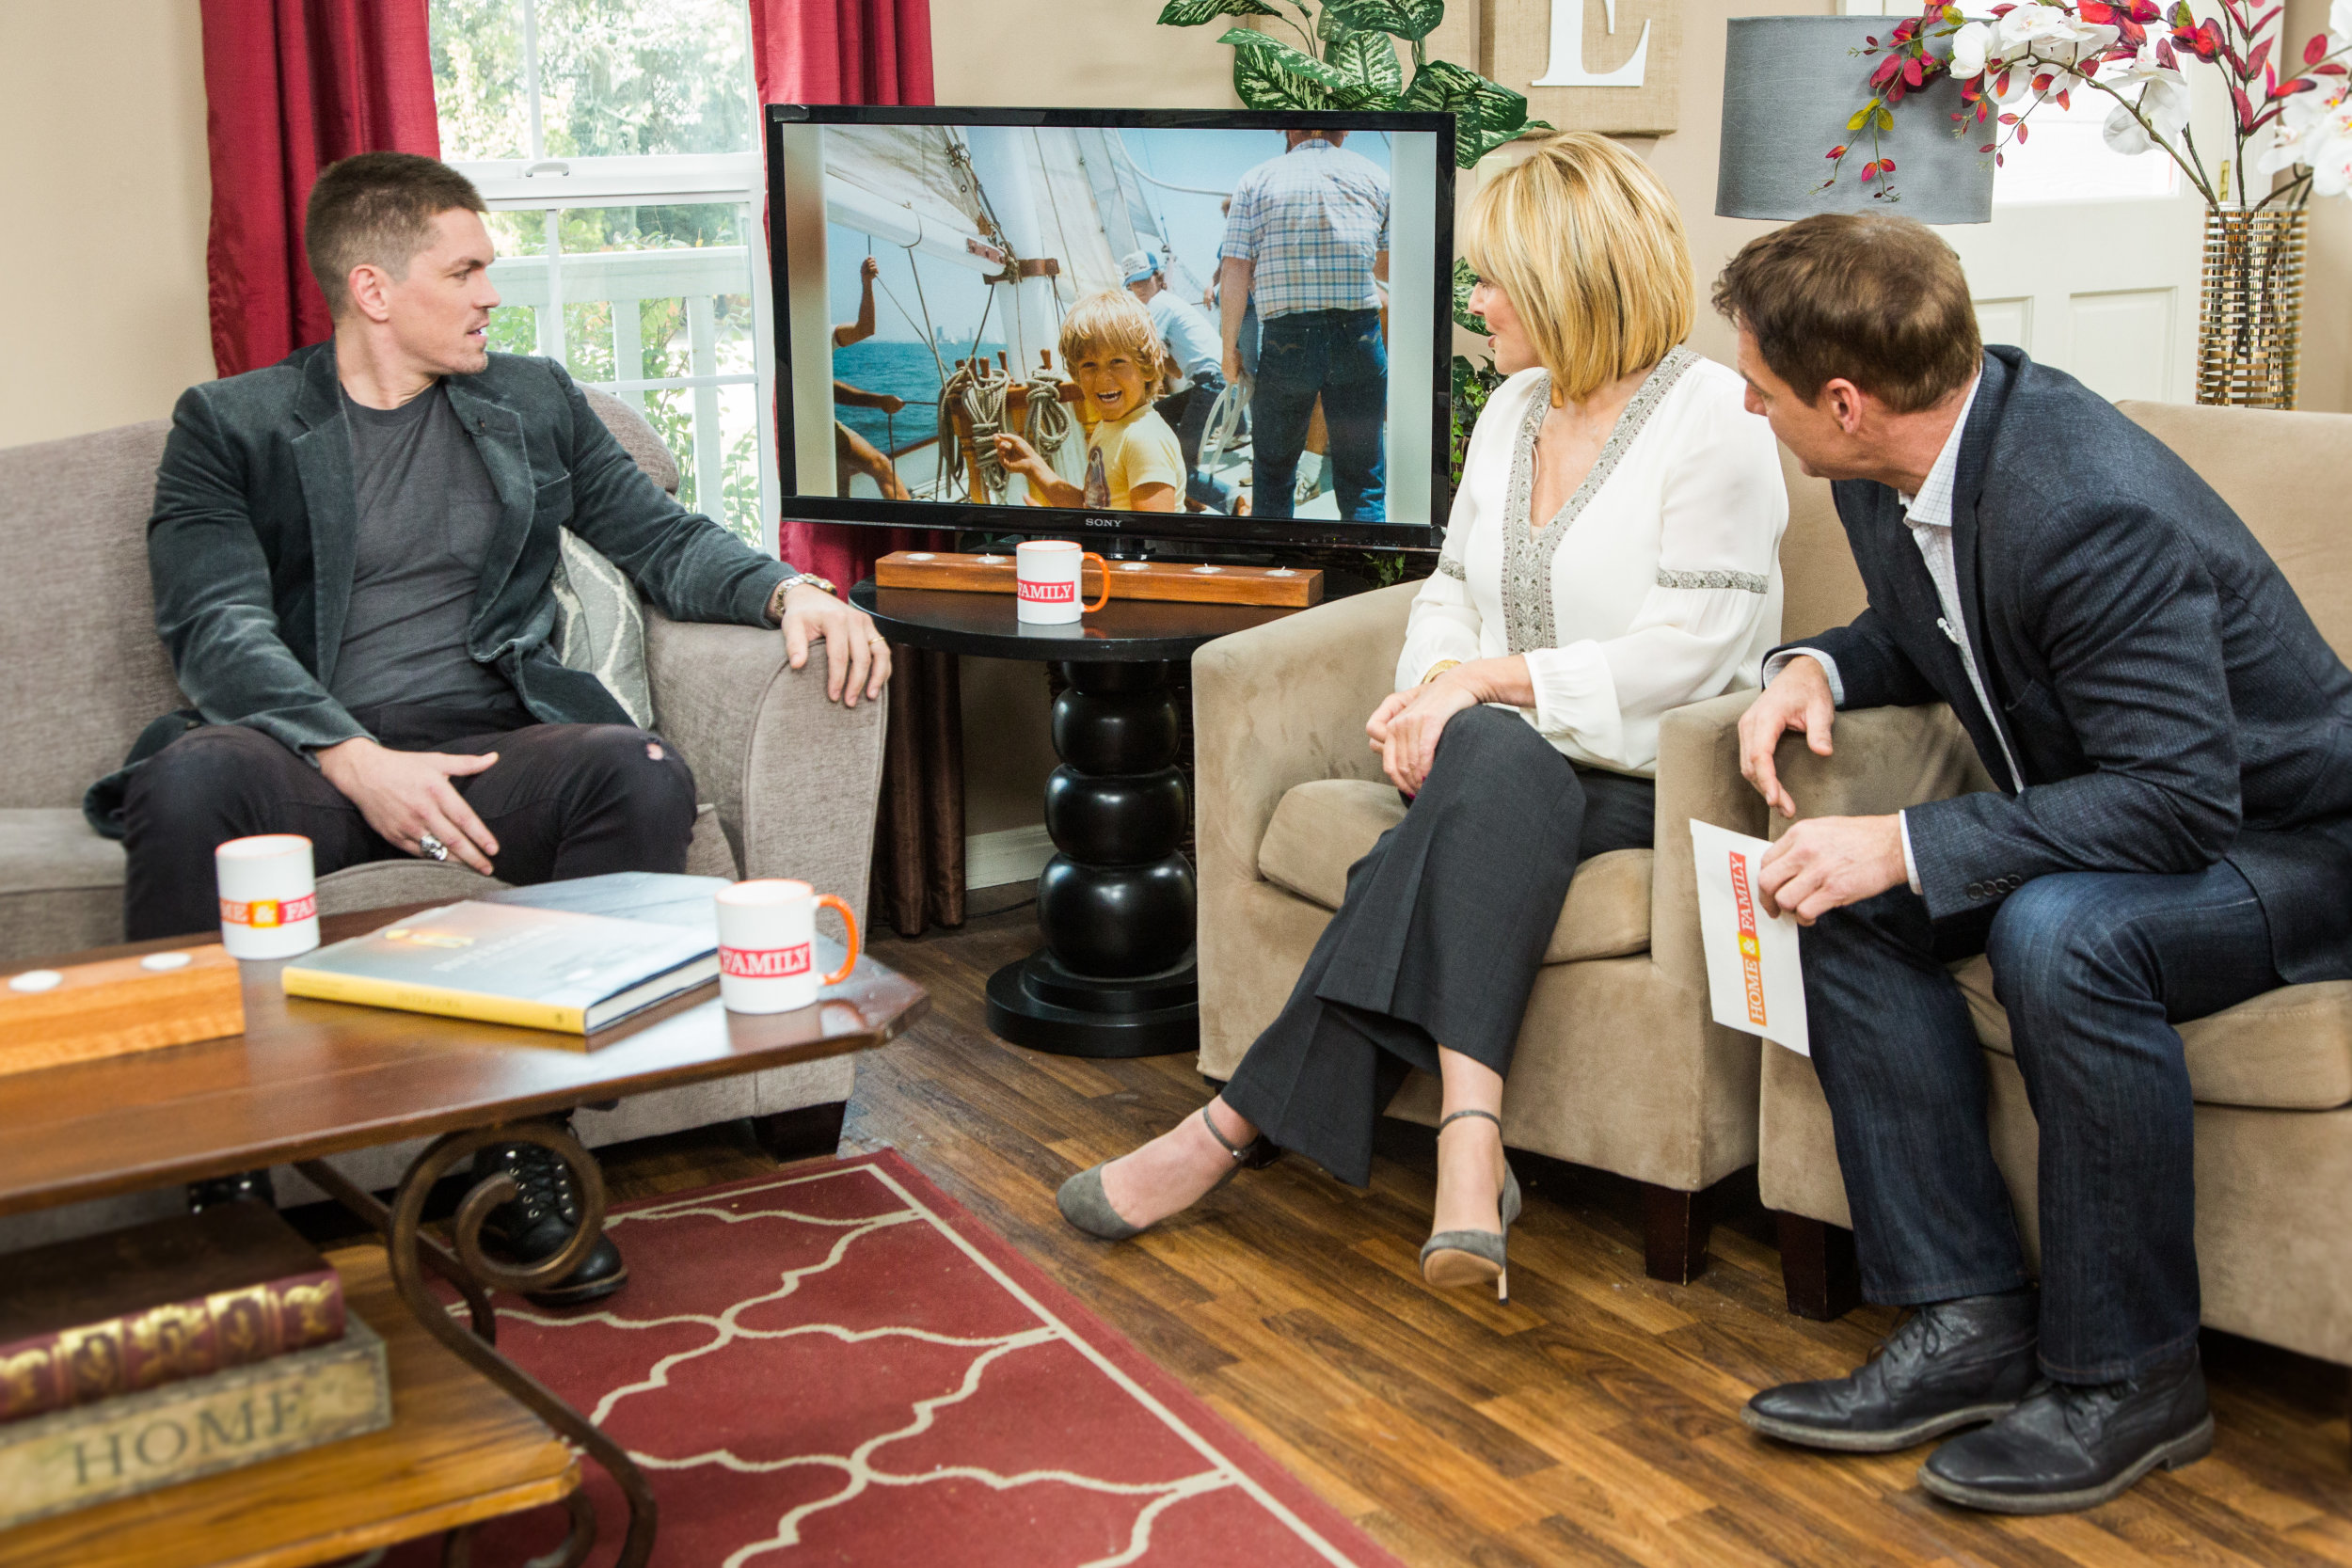 Hollywood steals home and family - Hollywood Steals Home And Family 48